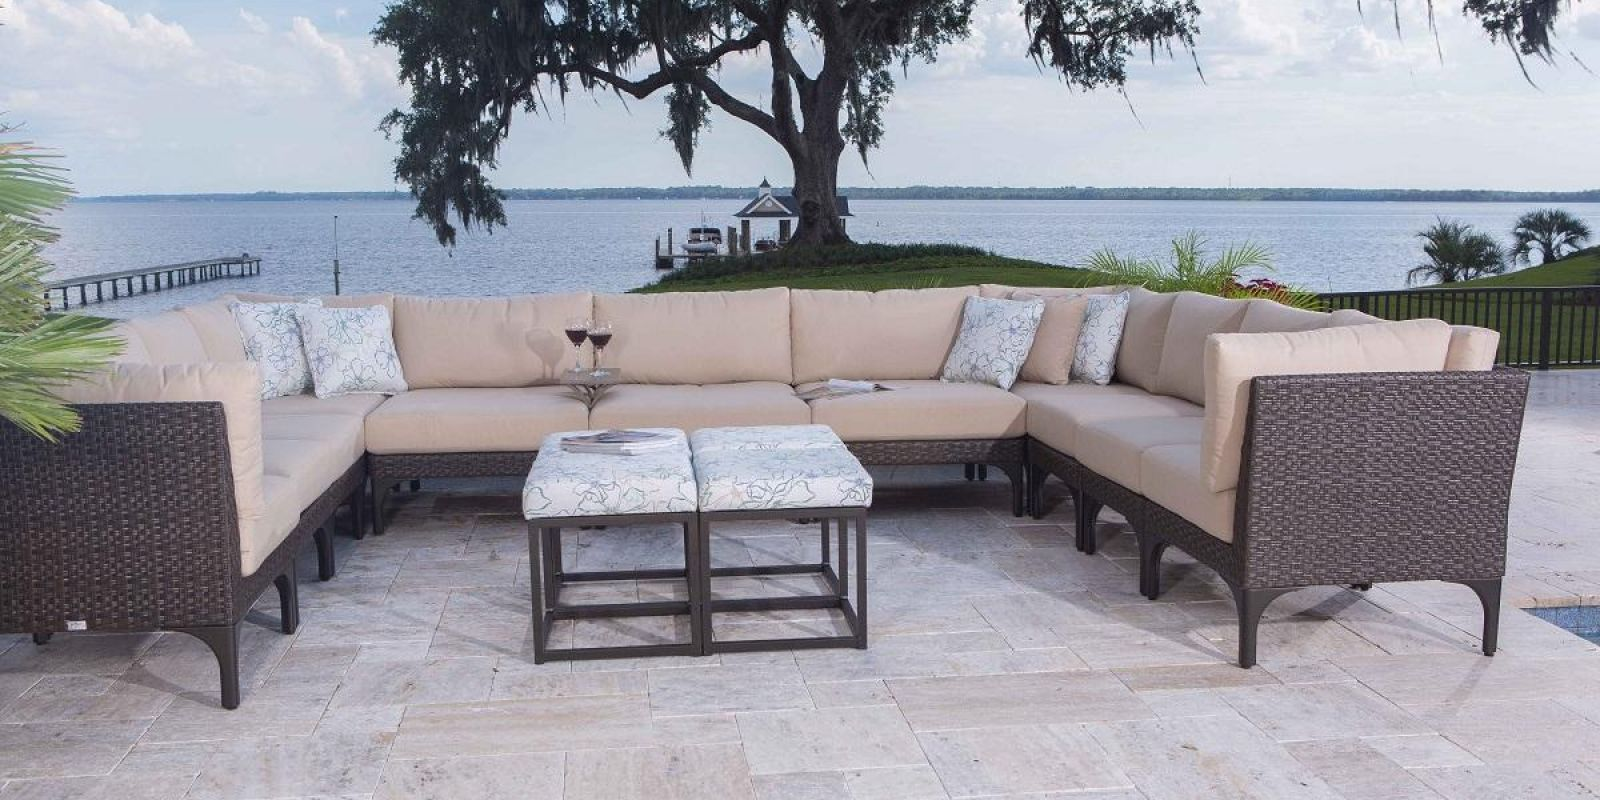 Outdoor Furniture | American Casual Living on Porch & Patio Casual Living id=88741